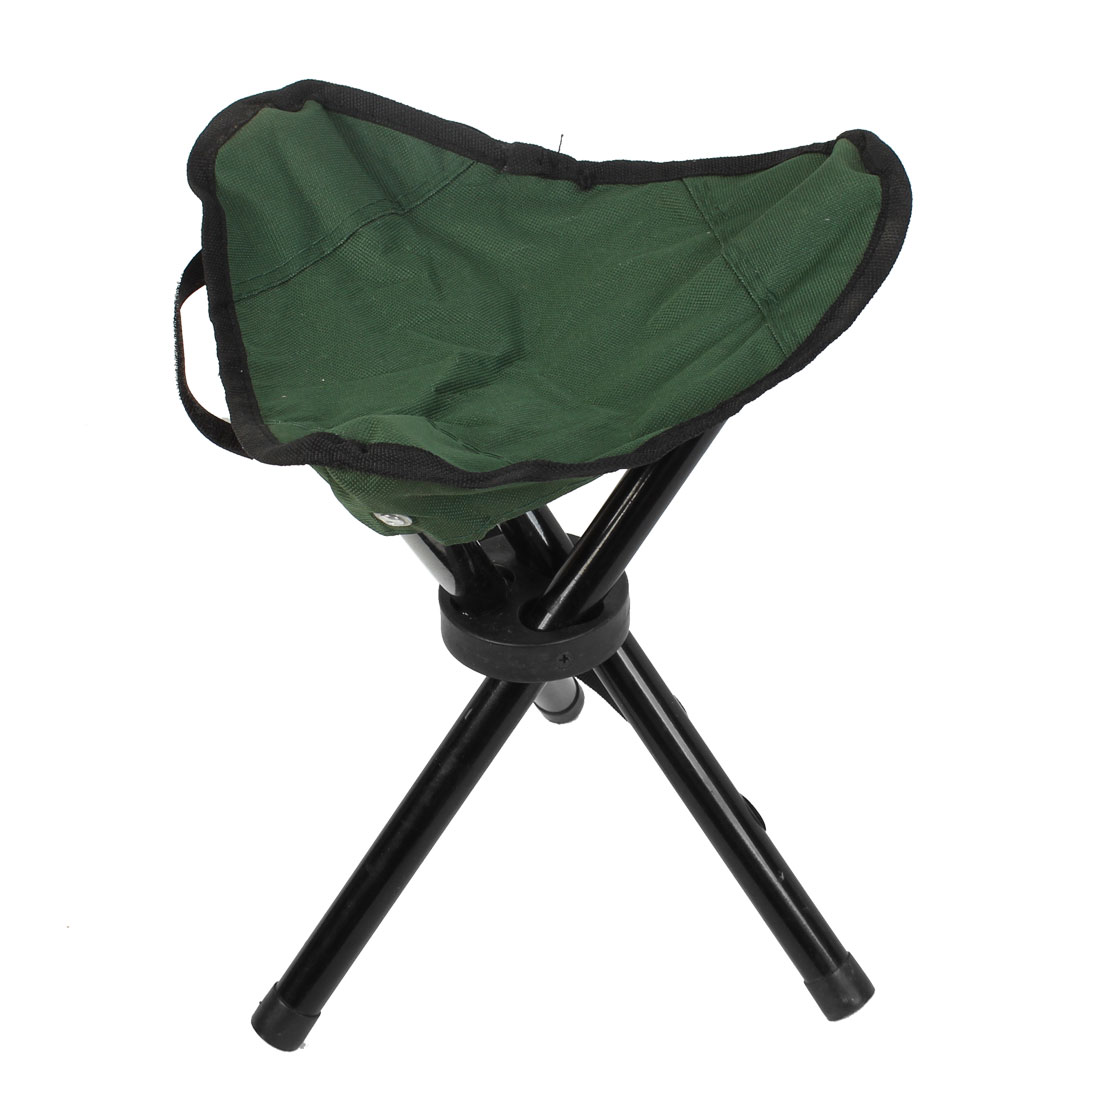 Outdoor Travel Camping Fishing Folding Tripod Stool Chair